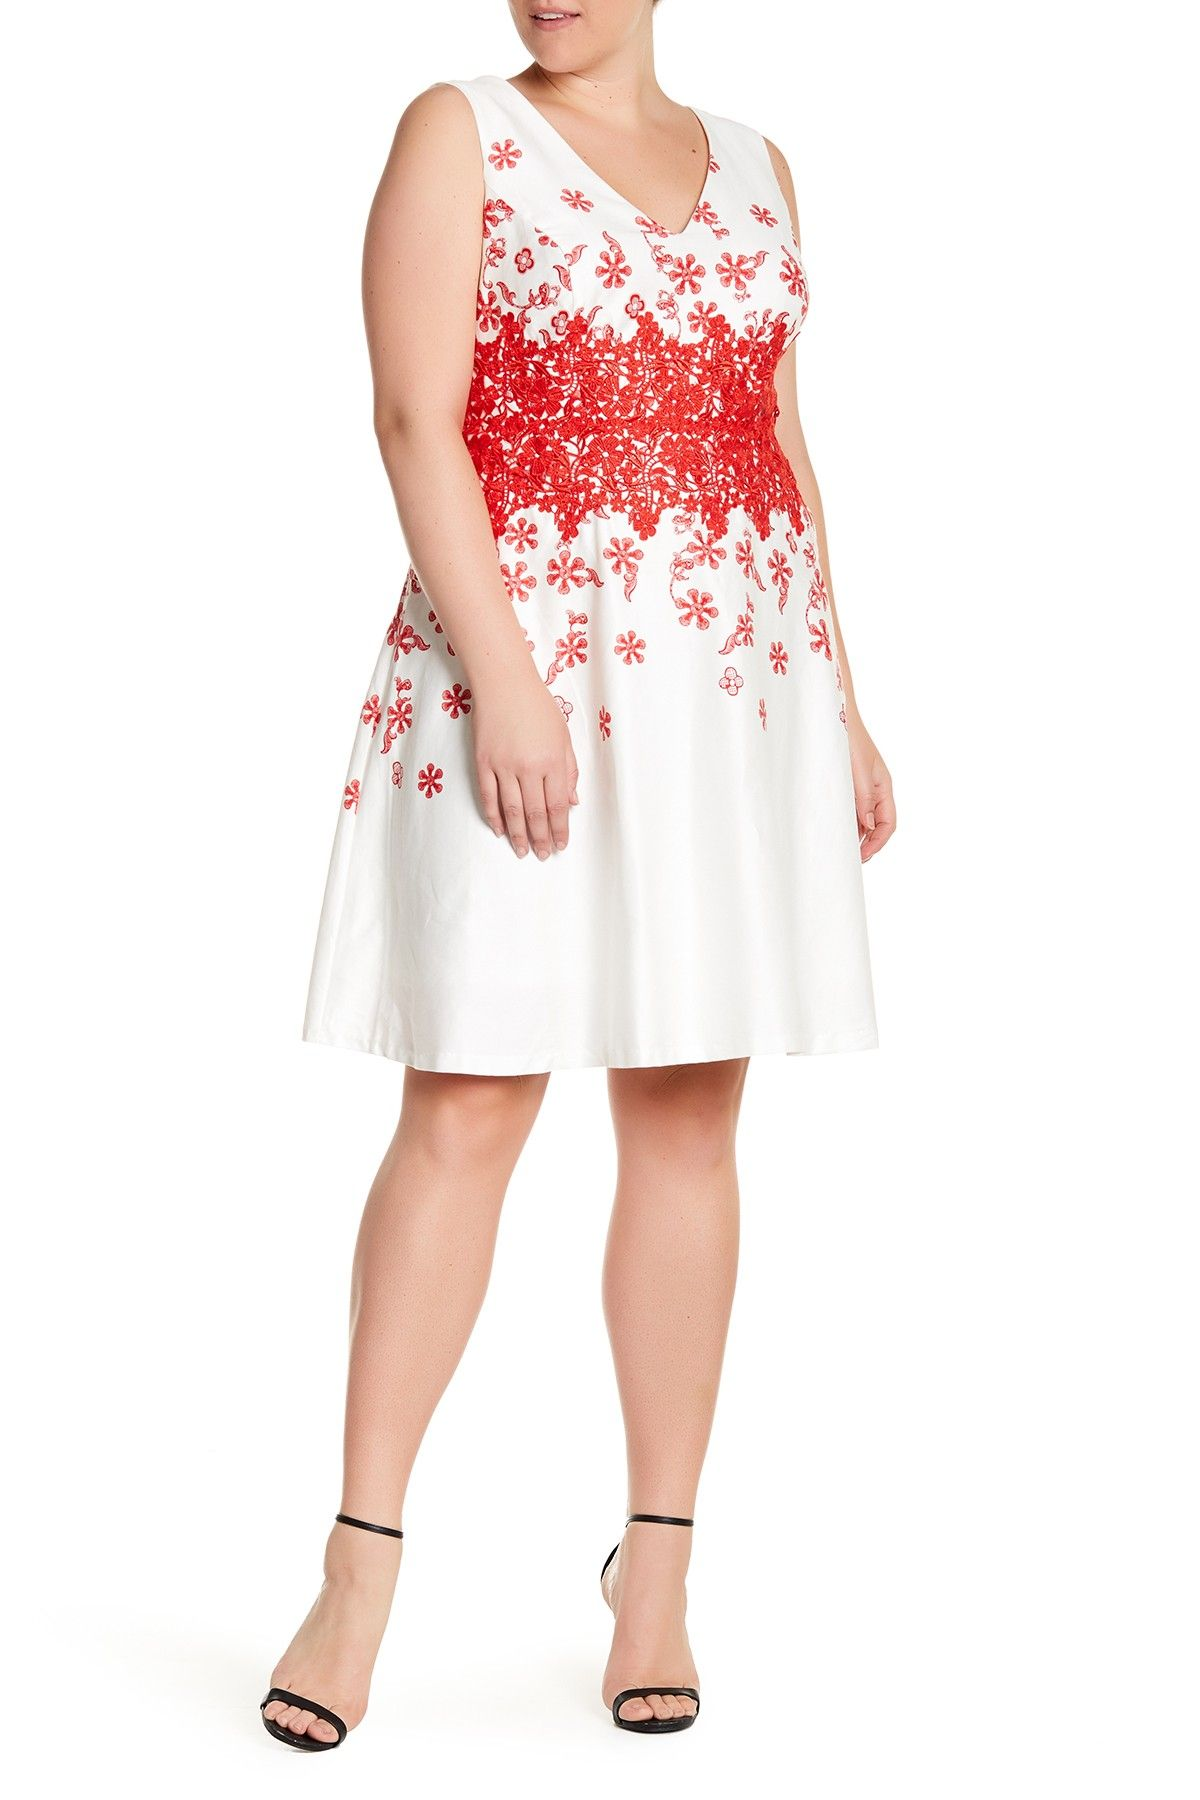 Sangria Embroidered Fit Flare Dress Plus Size All Things My